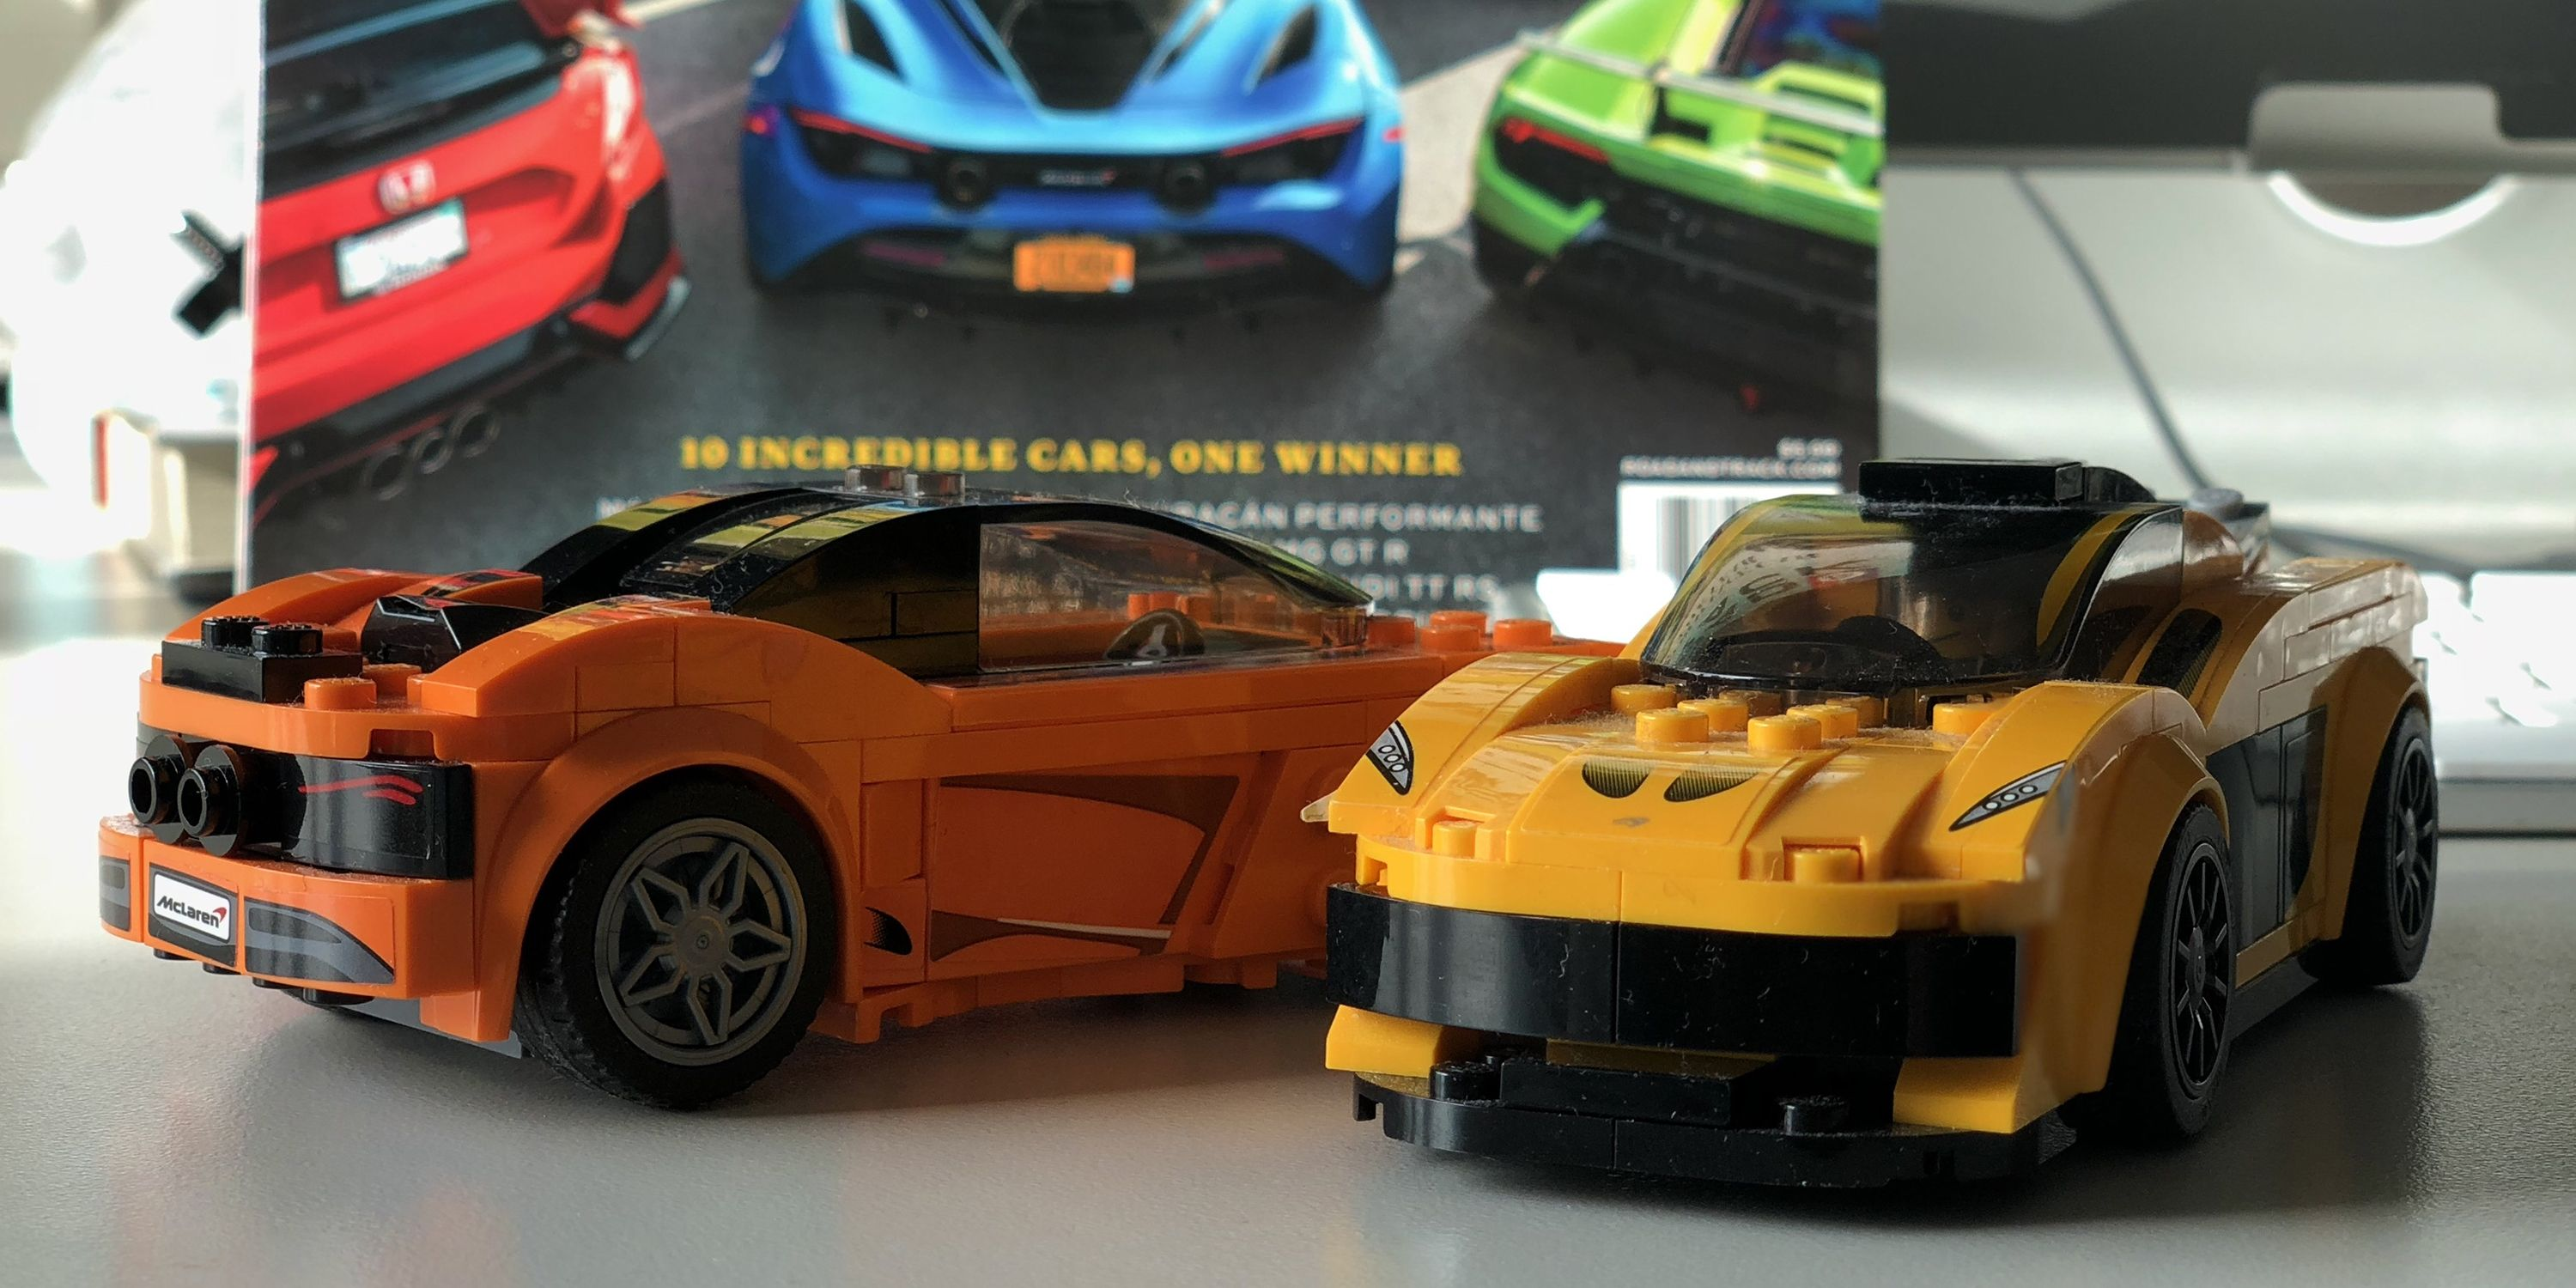 Best Gifts for Car Lovers in 2018 - Cool Gift Ideas For Car Enthusiasts